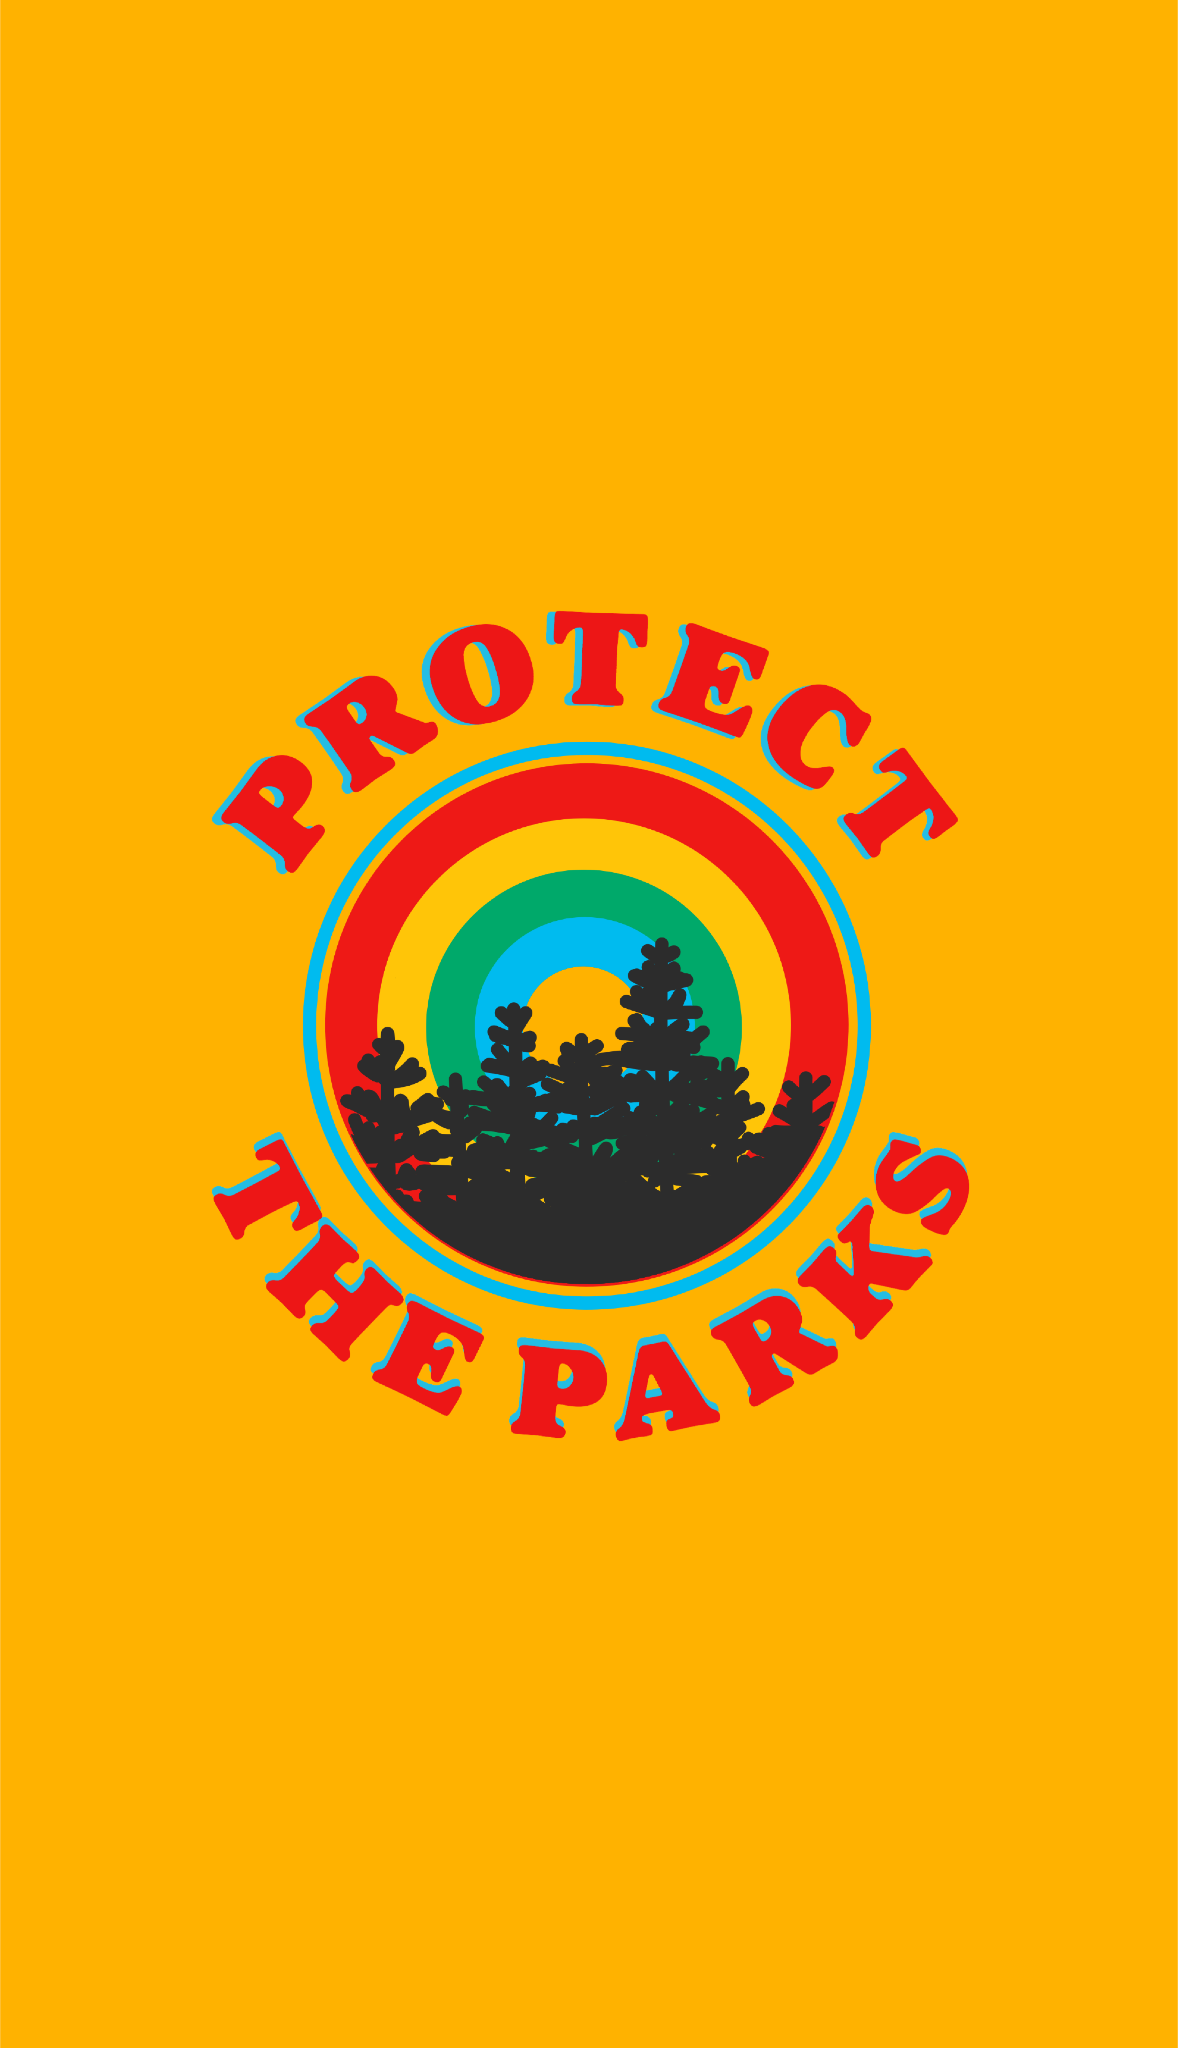 Protect The Parks Retro Aesthetic Environmentalist Sticker Sticker By Lexie Pitzen Retro Aesthetic Nature Design Yellow Aesthetic